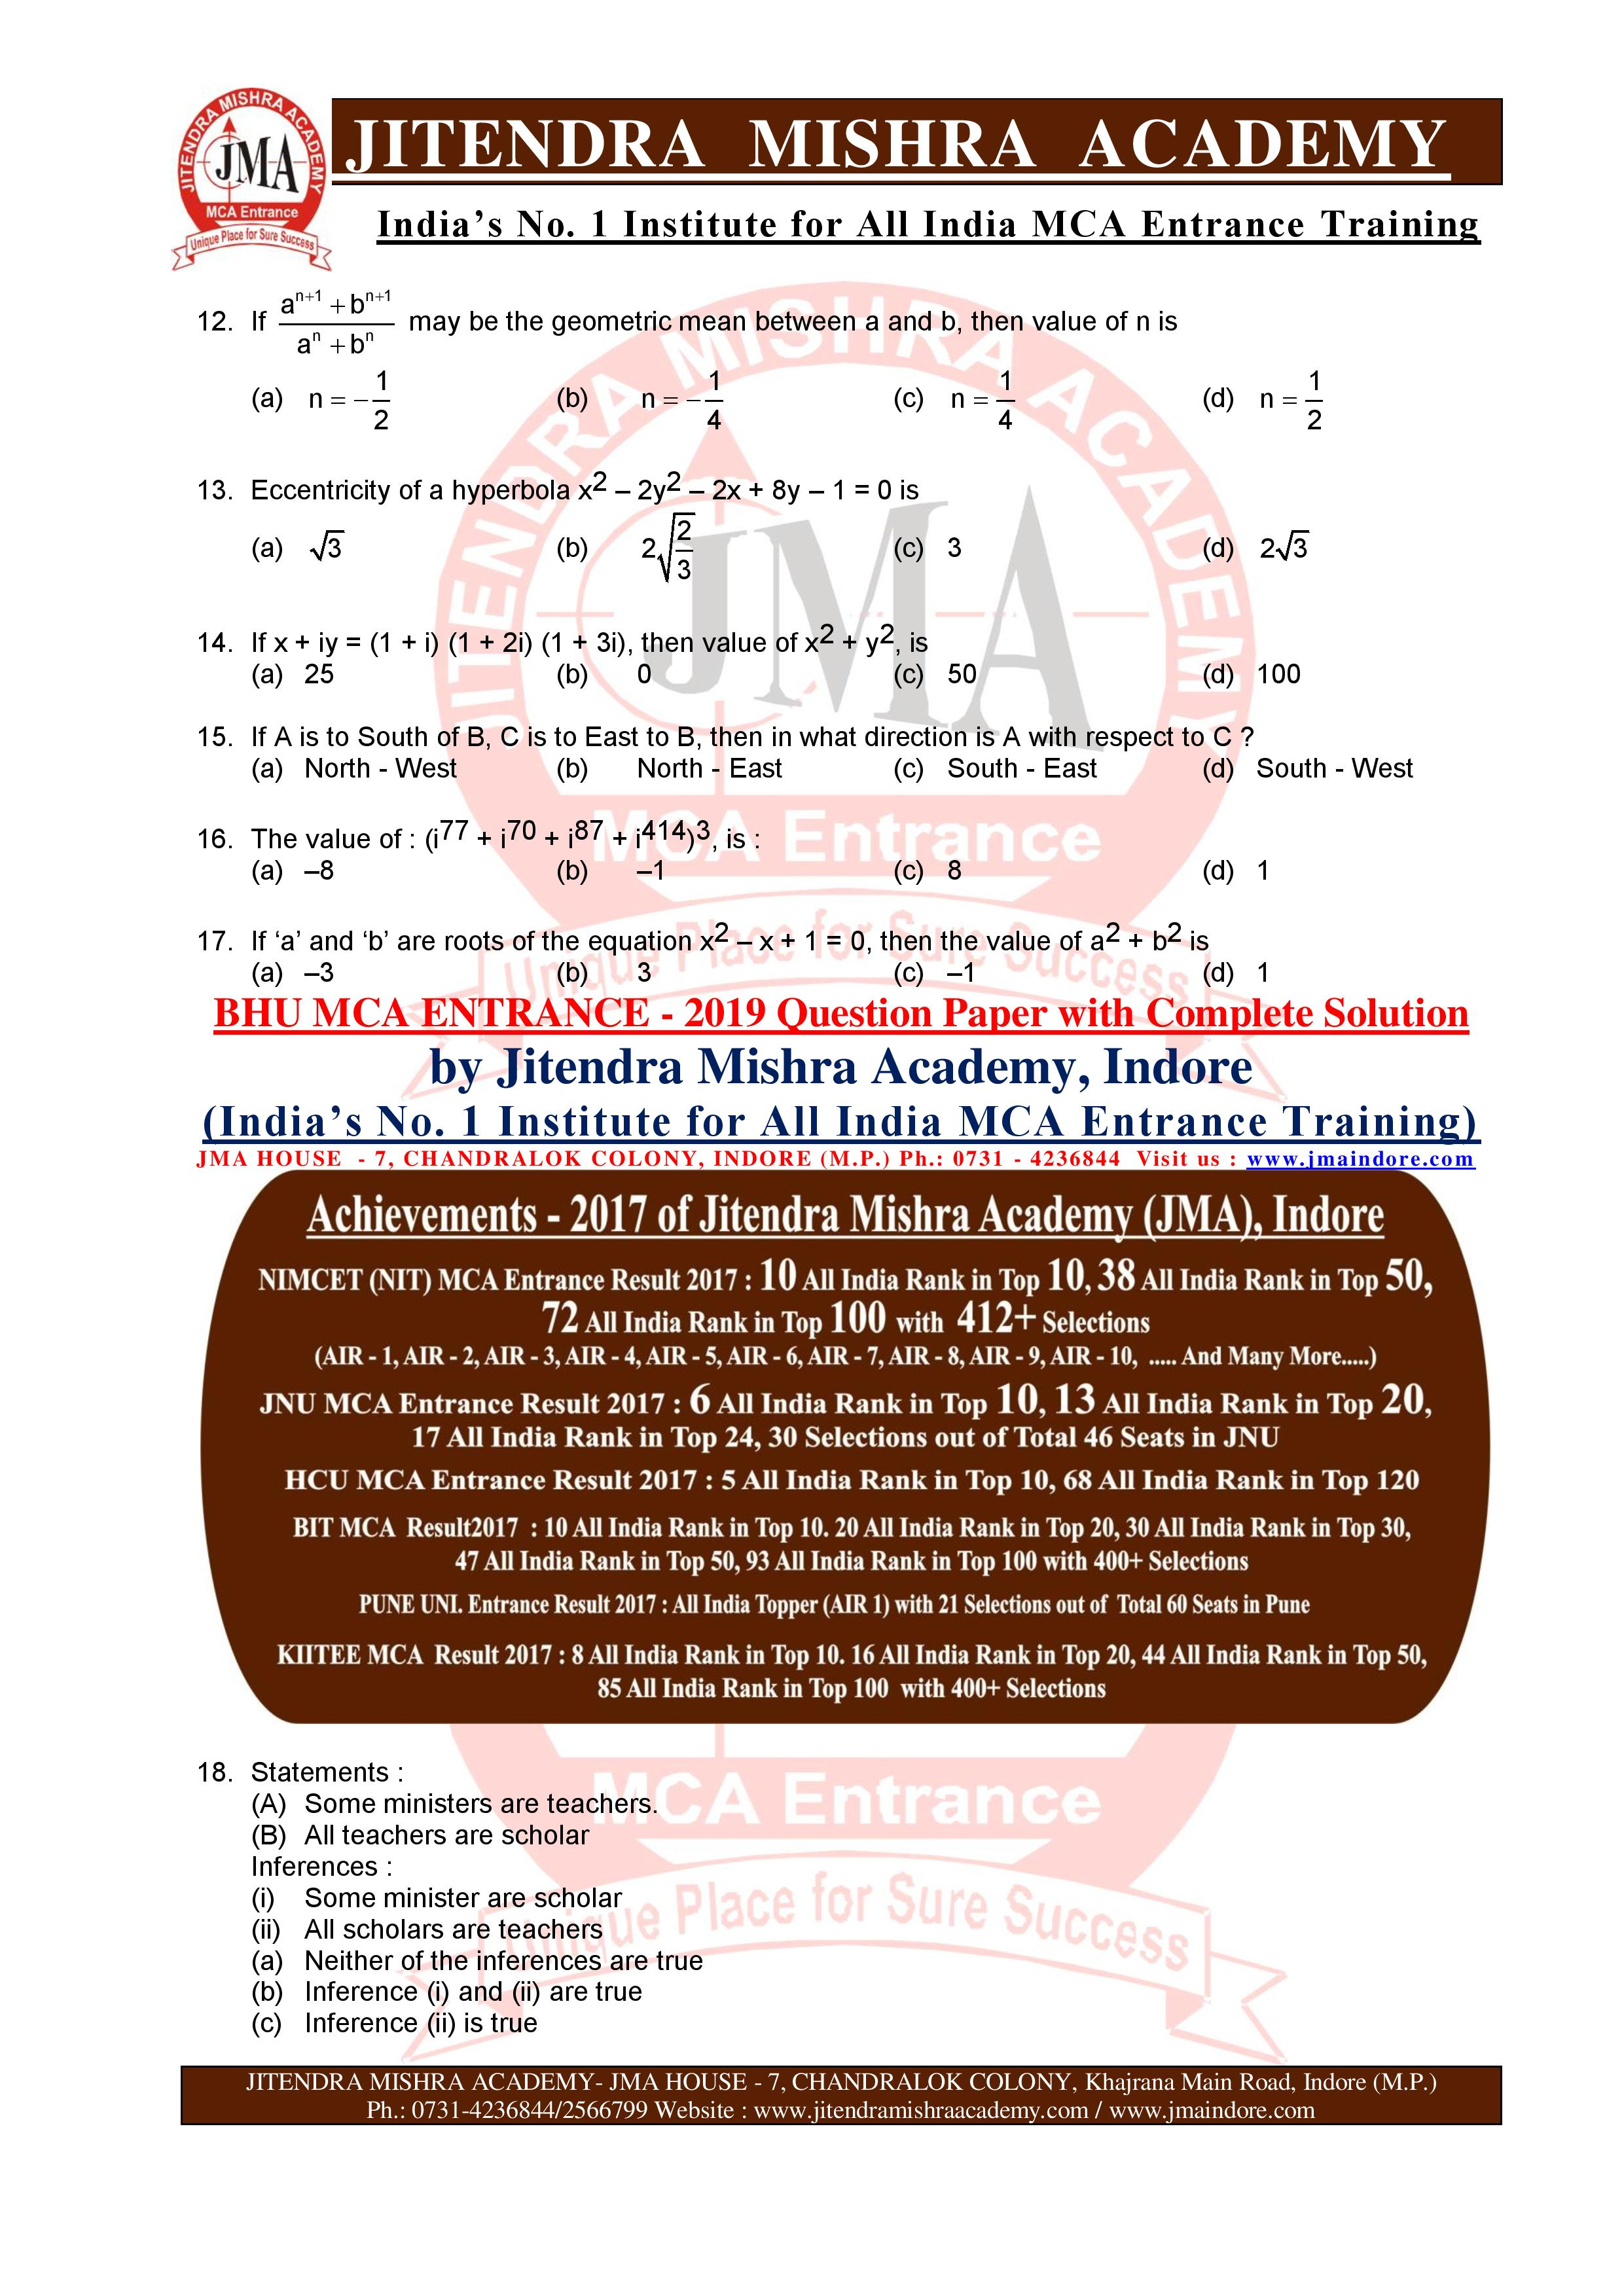 BHU MCA 2019 QUESTION PAPER-page-003